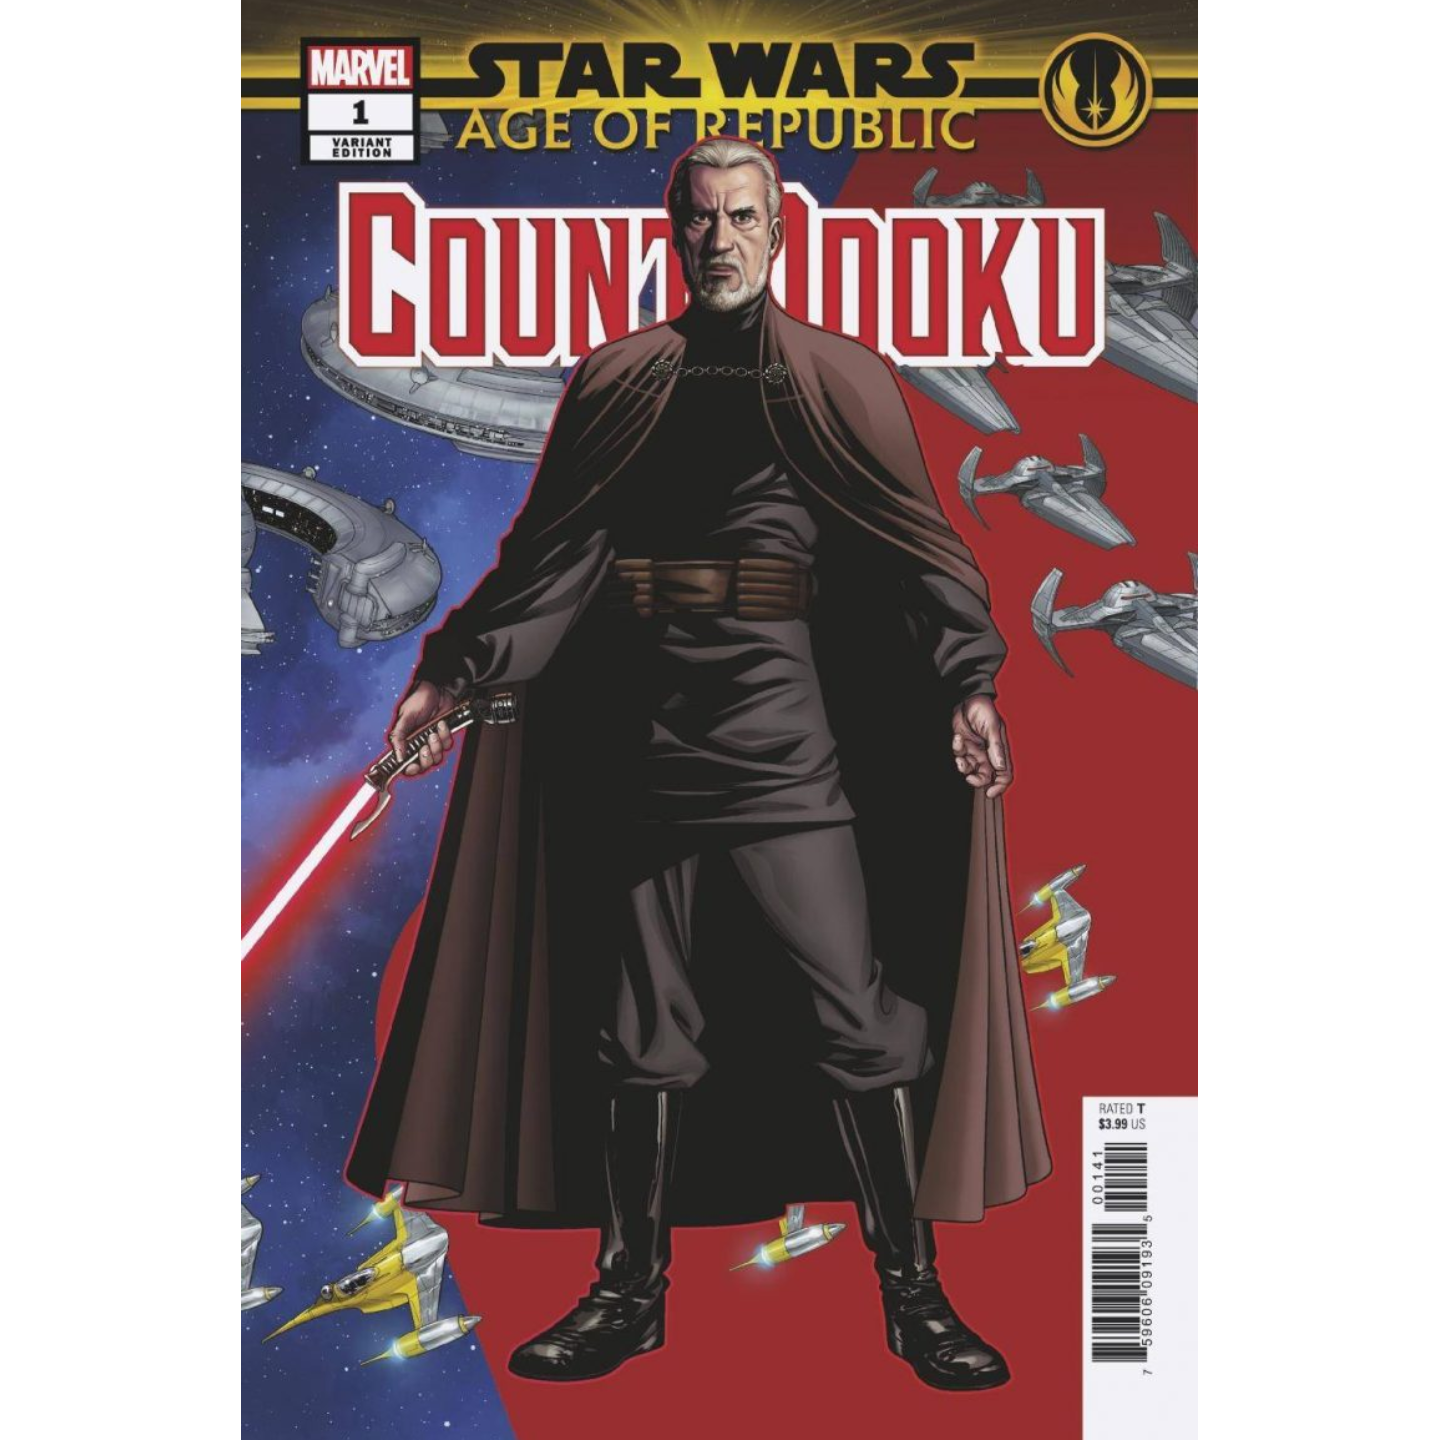 STAR WARS AGE OF THE REPUBLIC - COUNT DOOKU - MCKONE VAR